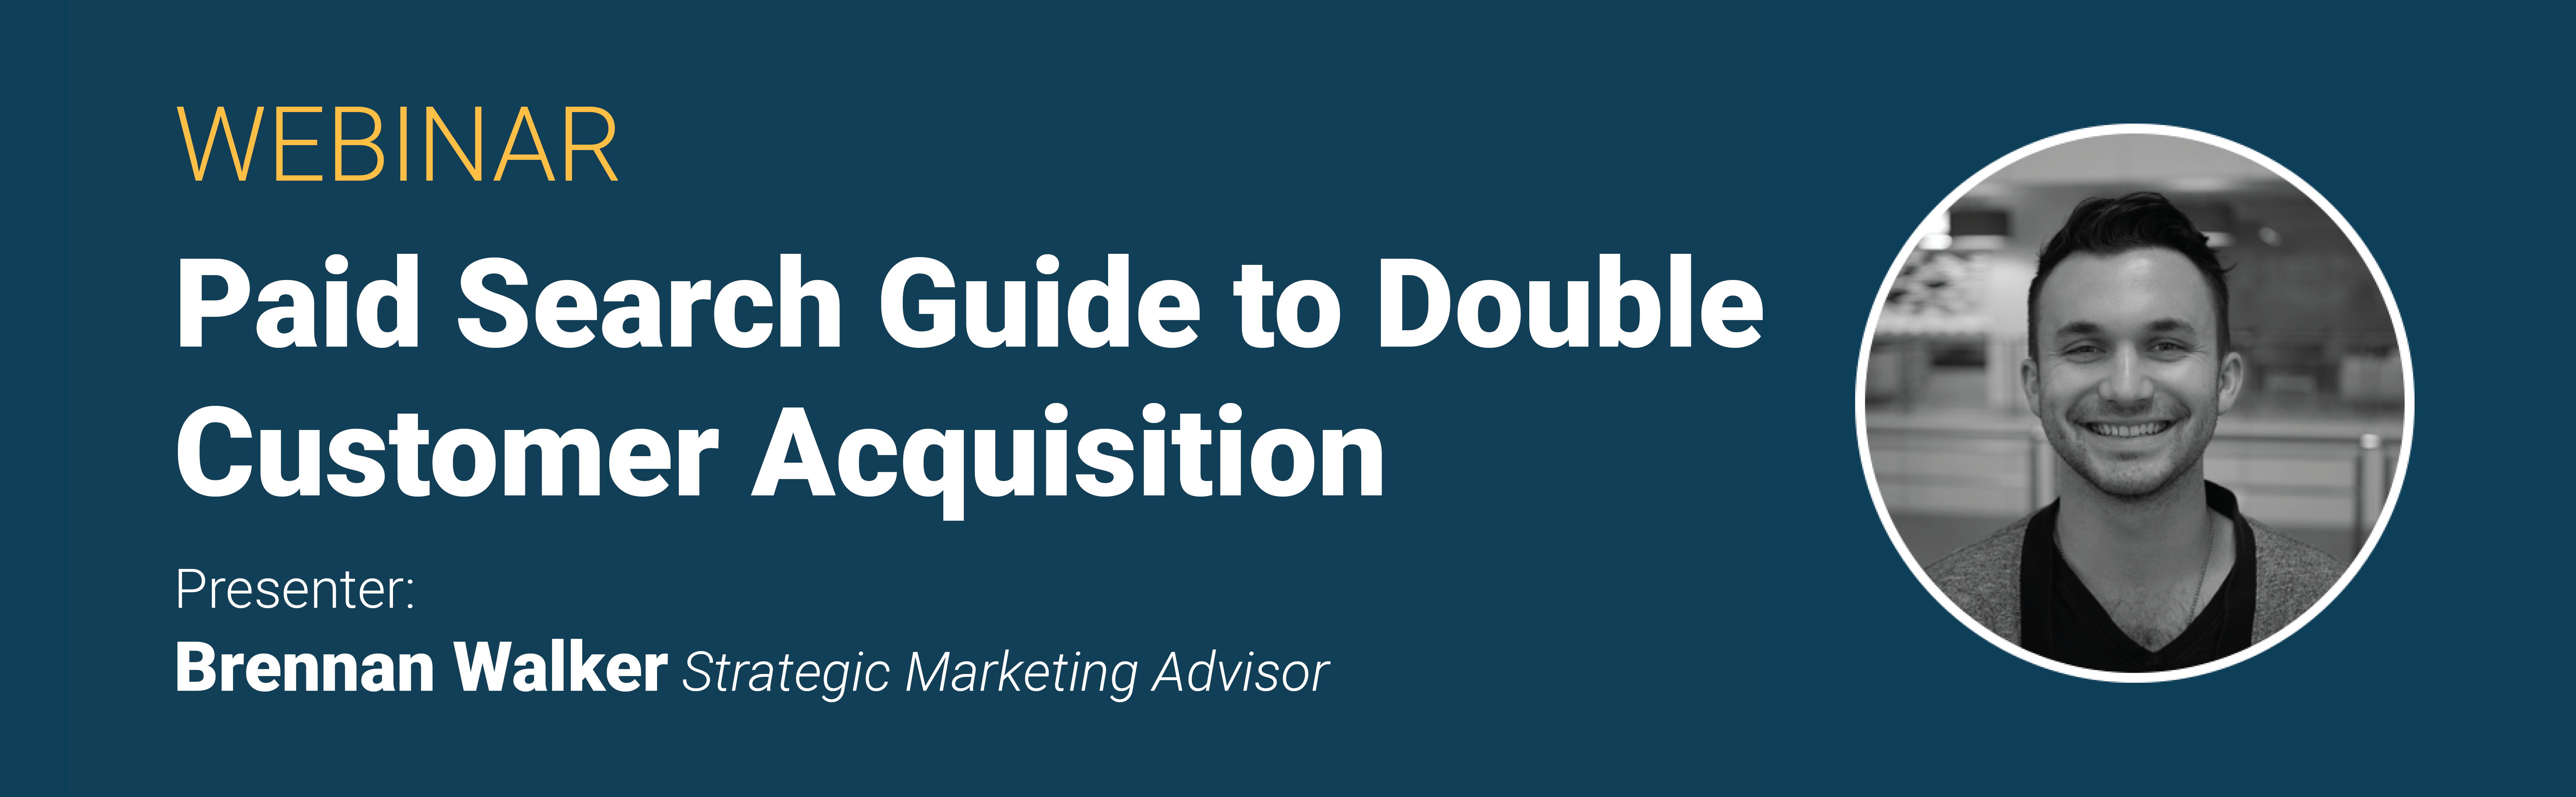 Paid Search Guide to Double Customer Acquisition Button